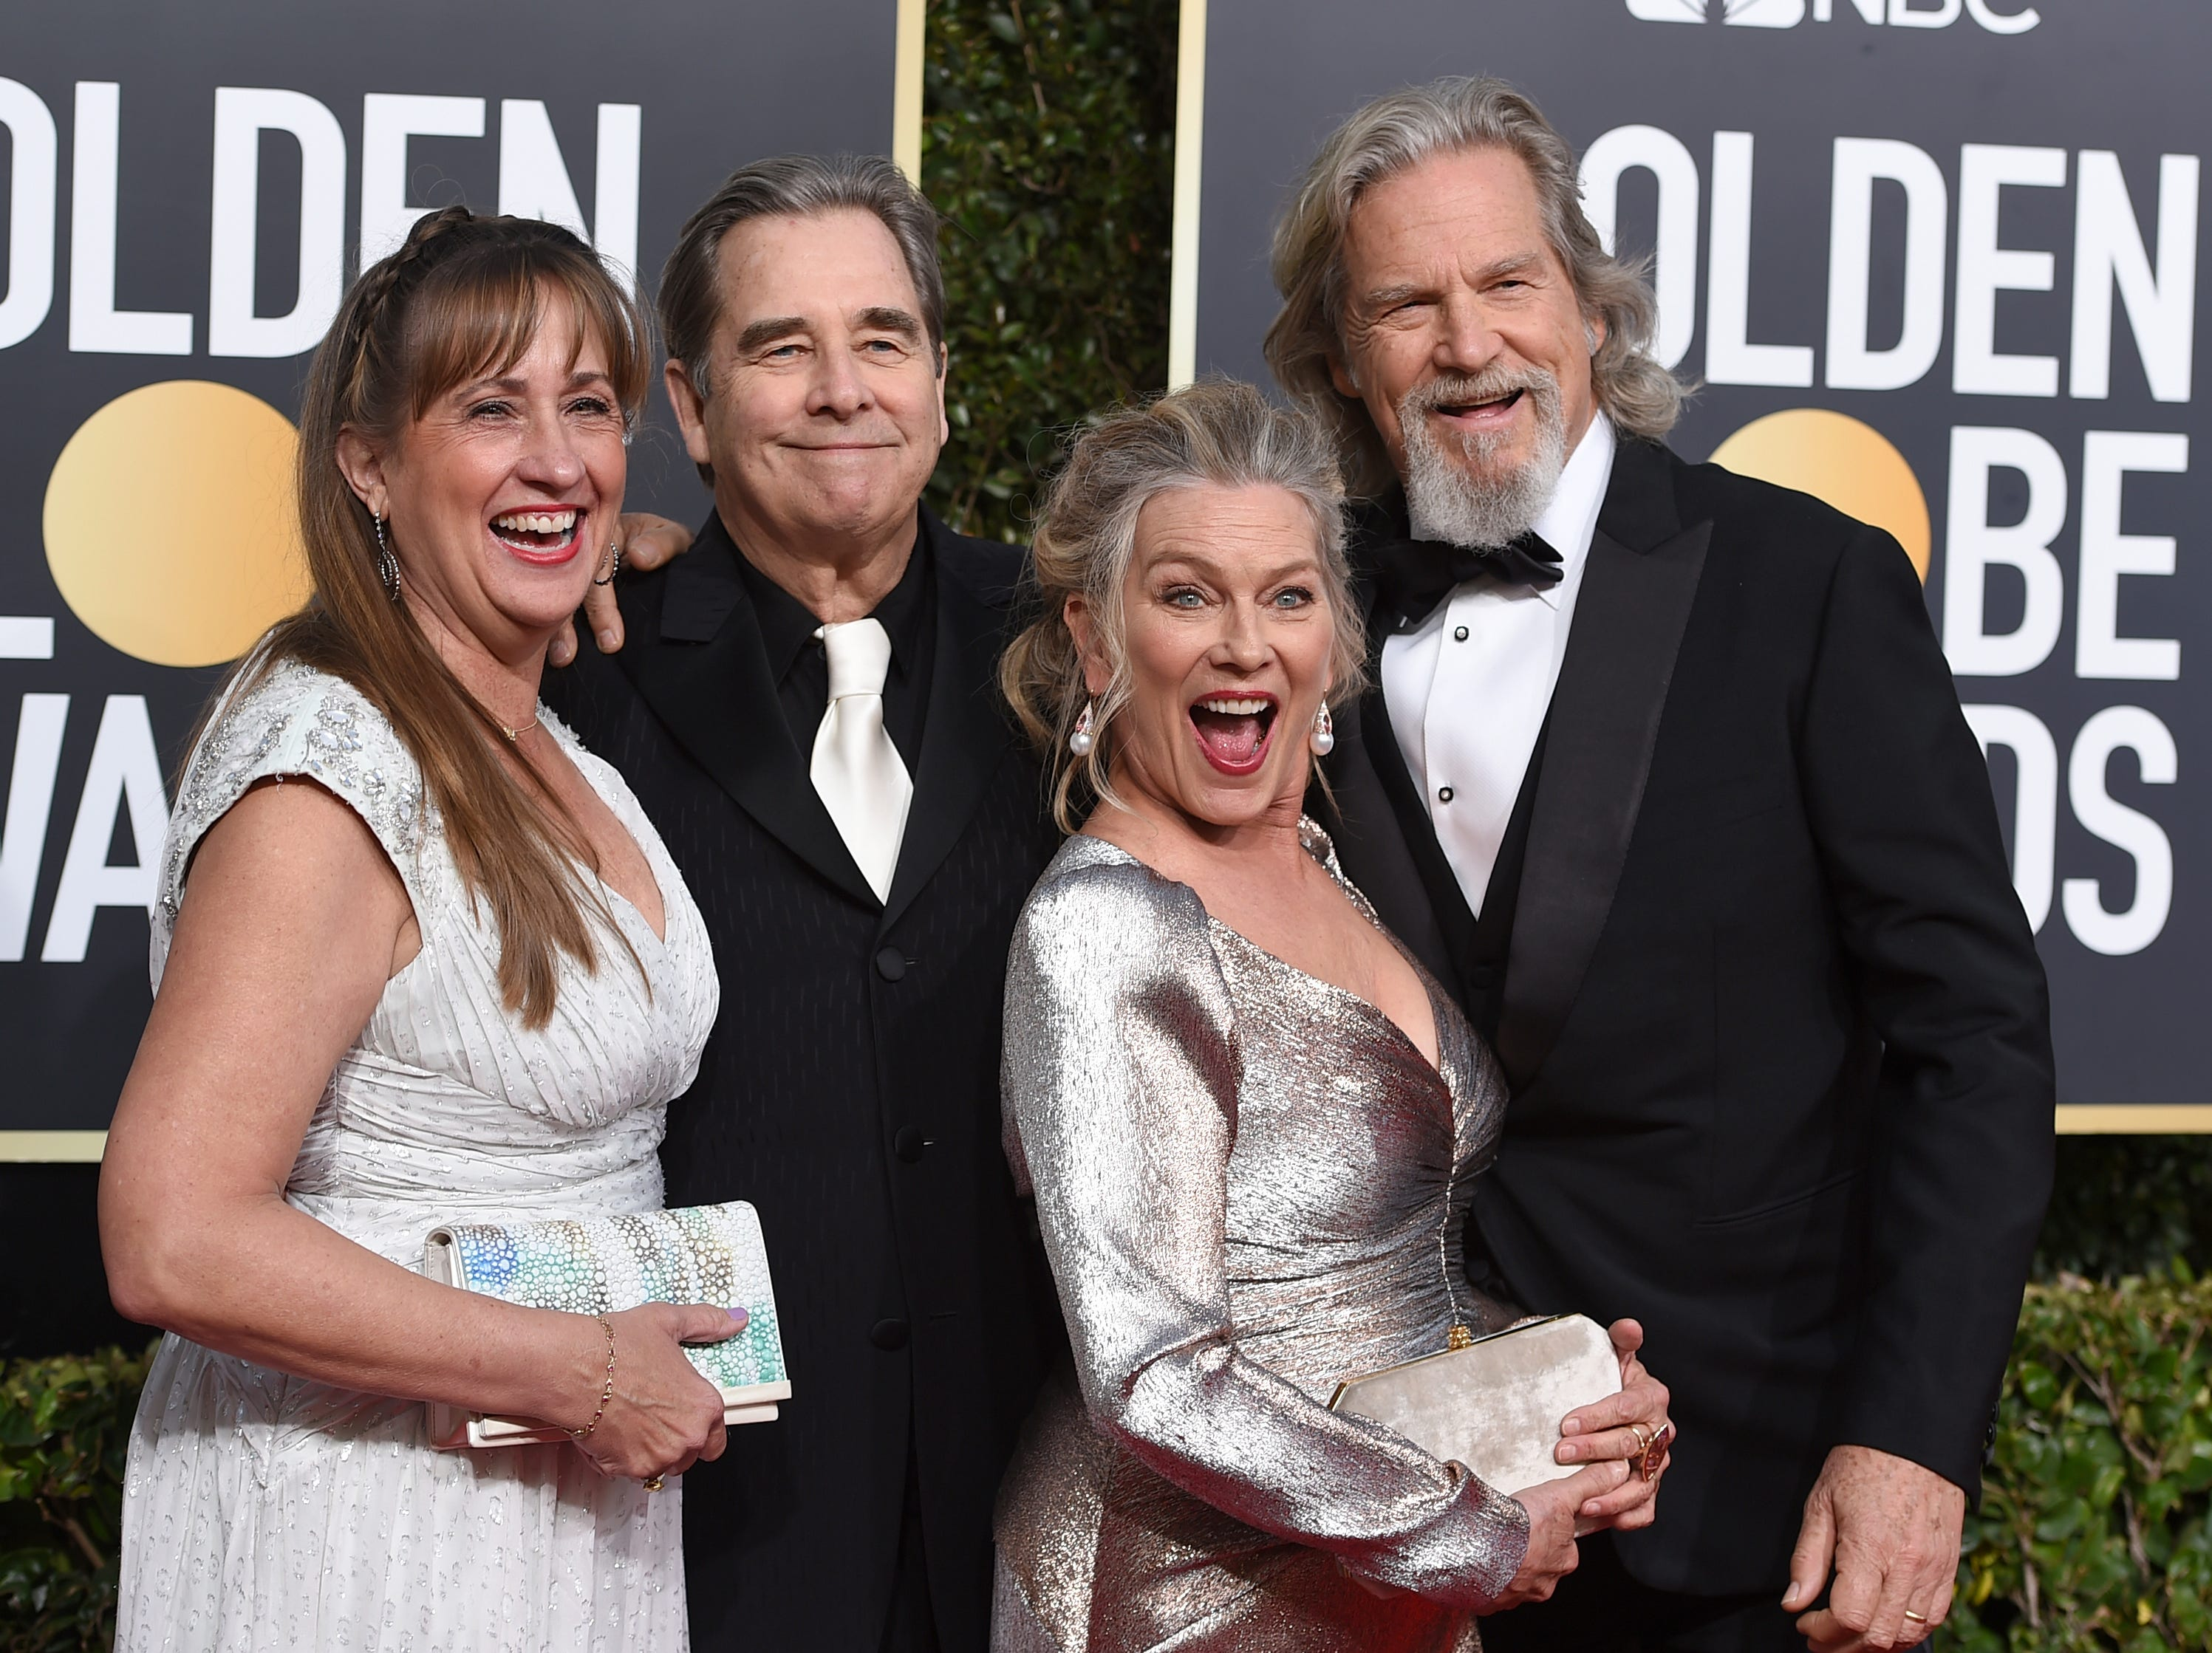 Wendy Treece, from left, Beau Bridges, Jeff Bridges and Susan Geston arrive at the 76th annual Golden Globe Awards at the Beverly Hilton Hotel.